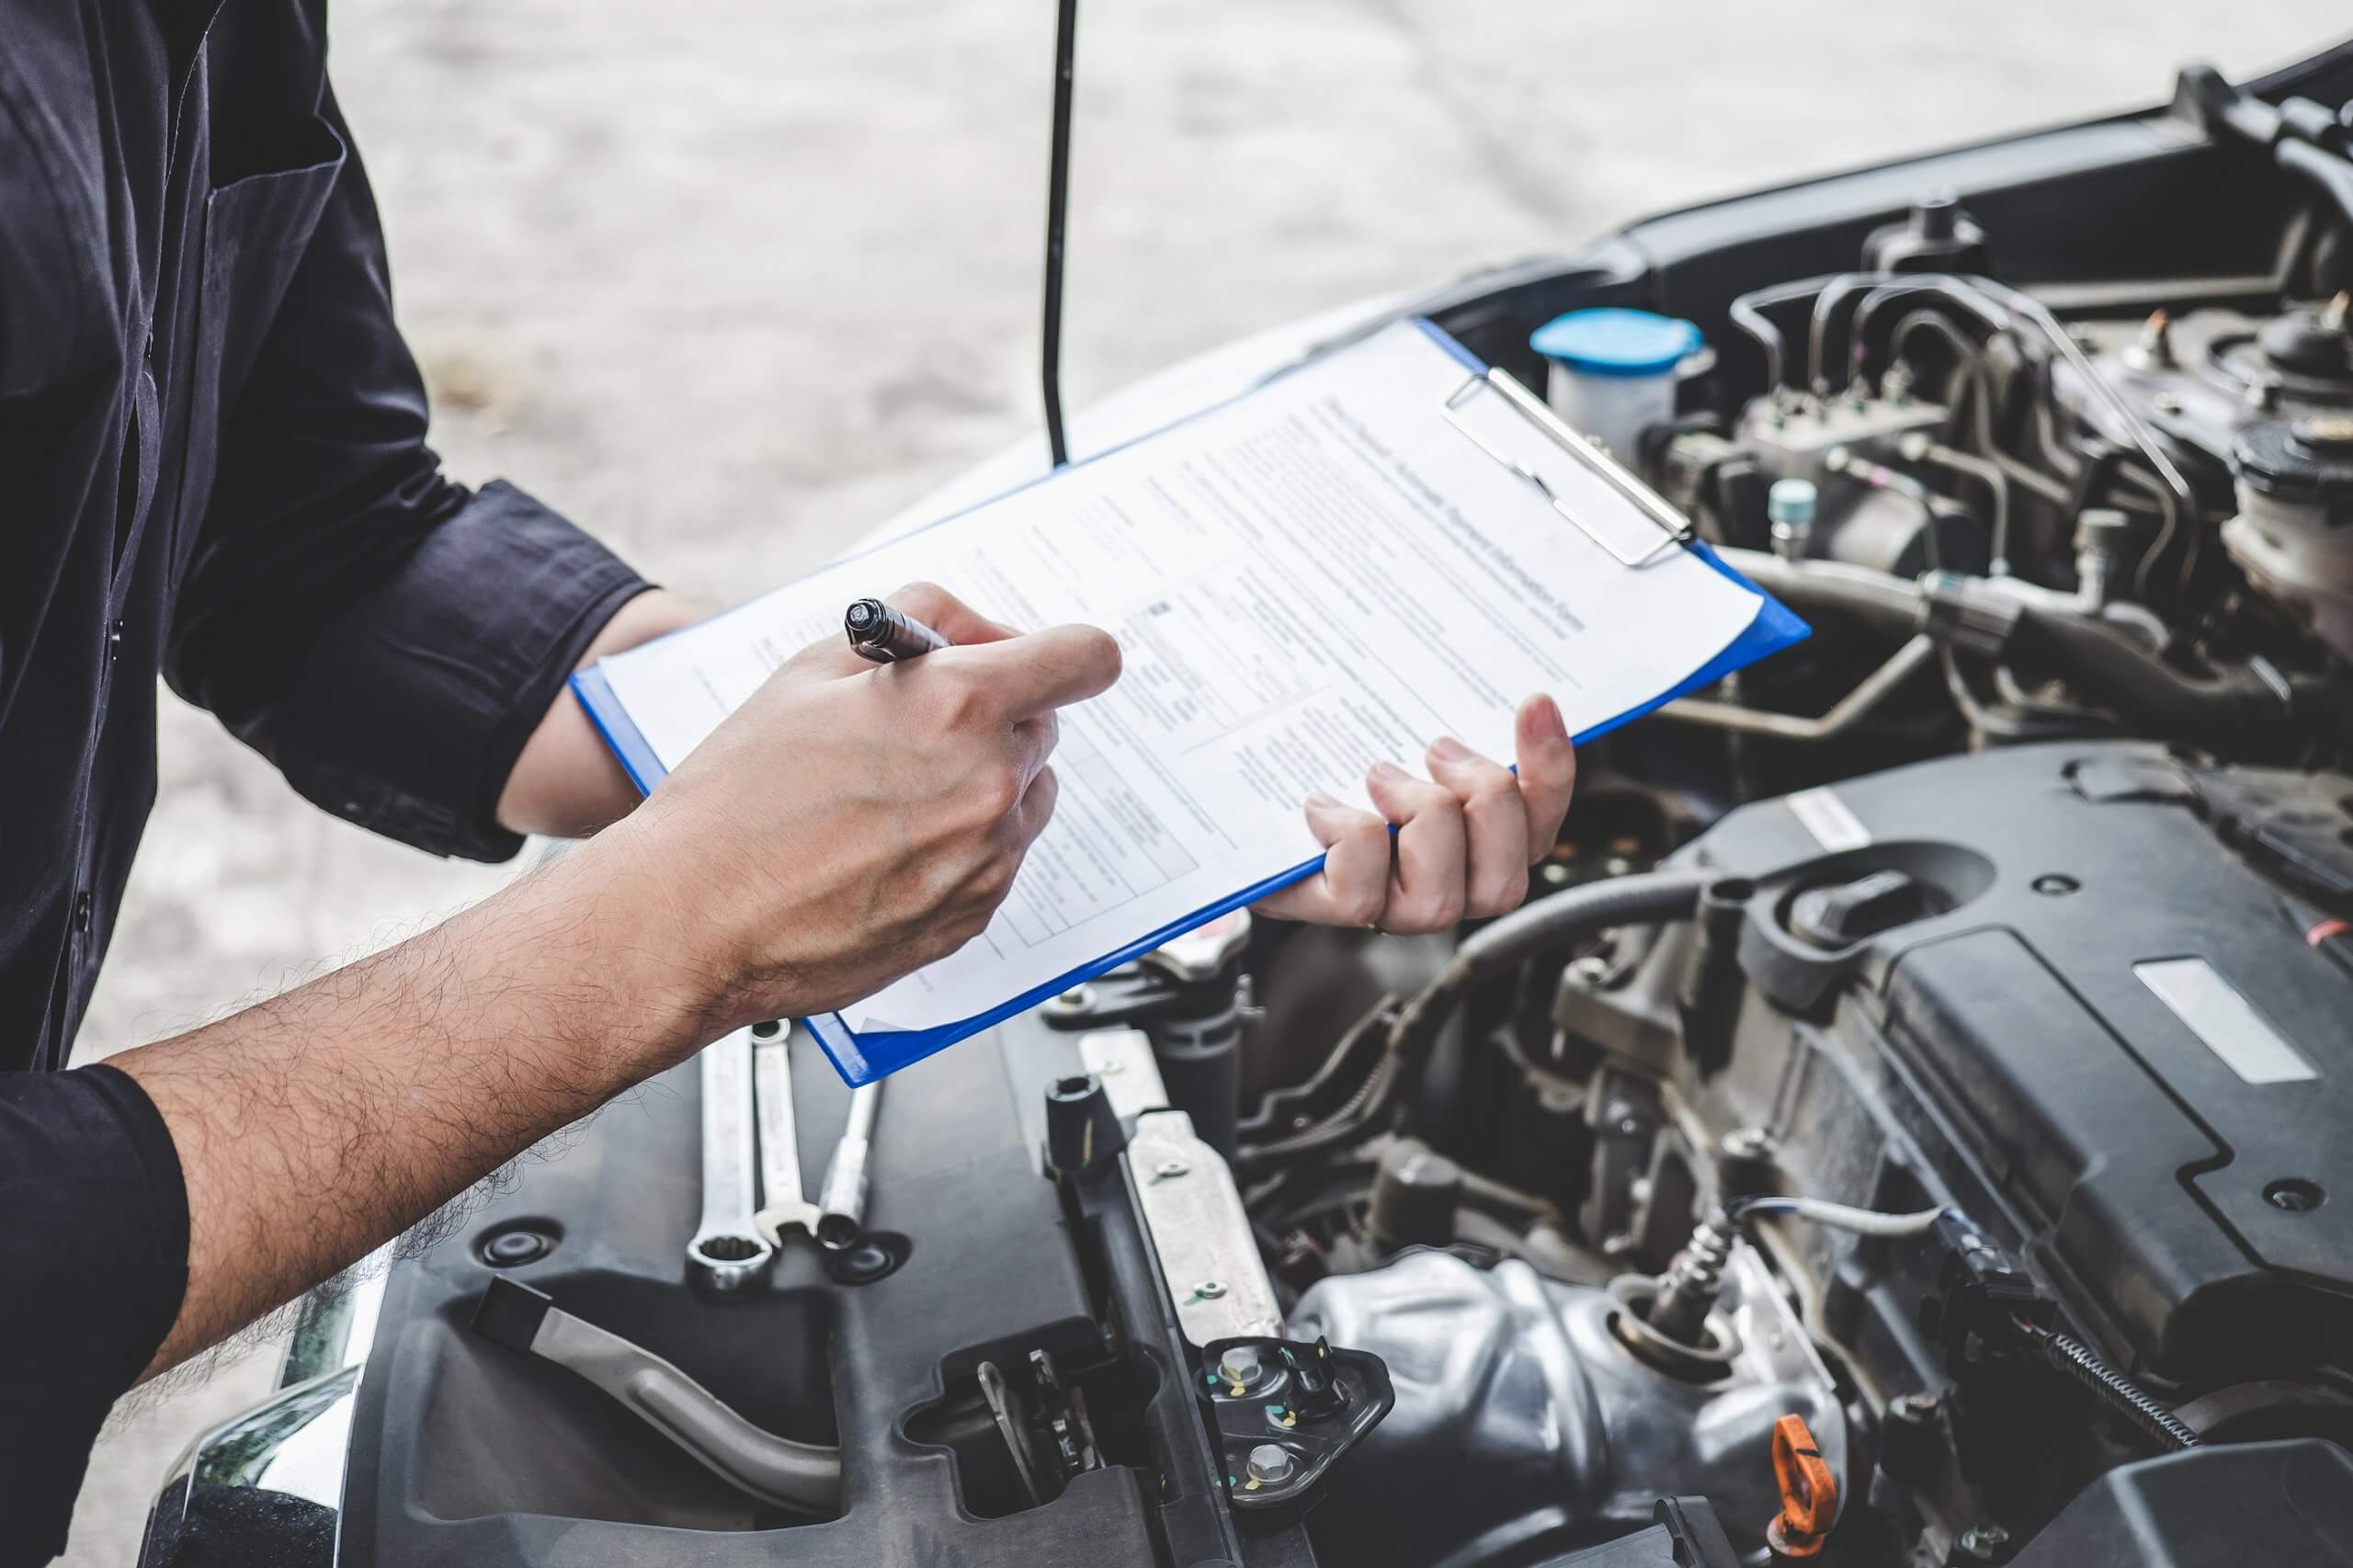 Mechanic filling out MOT certificate while inspecting car engine bay